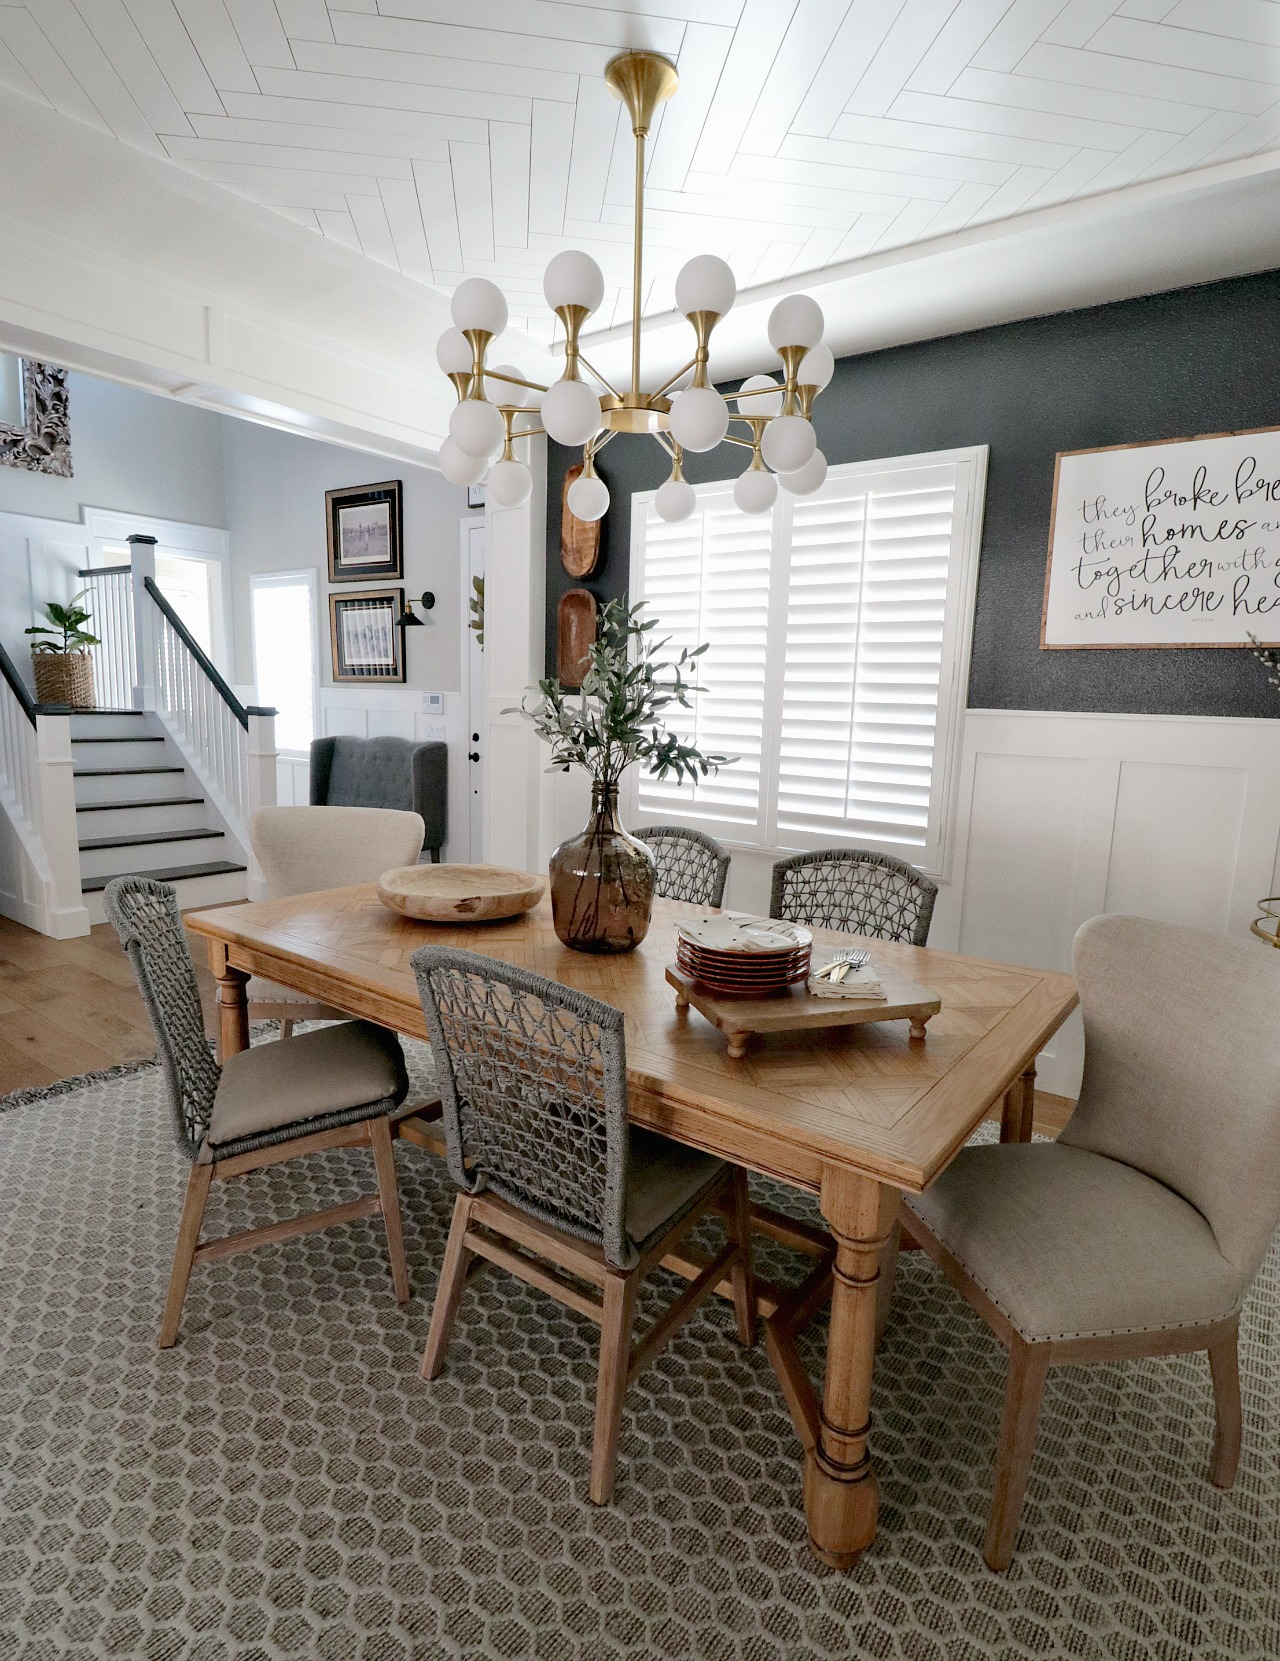 Hello And Welcome To My Dining Room Refresh Blog Post Had Been A E In Home That I Have Never Fully Felt Content With